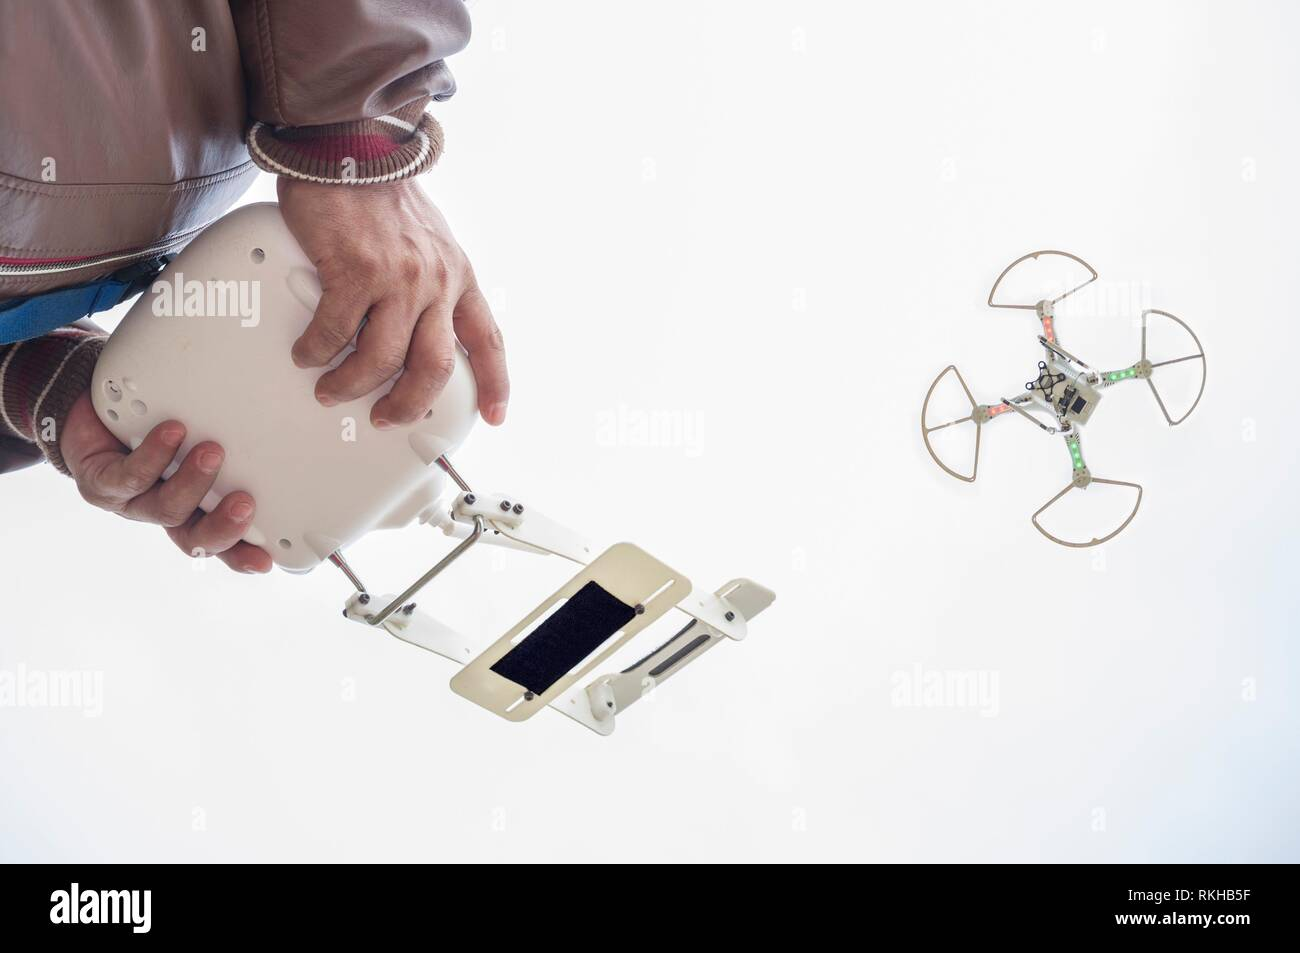 Pilot flying drone with FPV mount empty on remote controller. Aproaching maneuver. - Stock Image